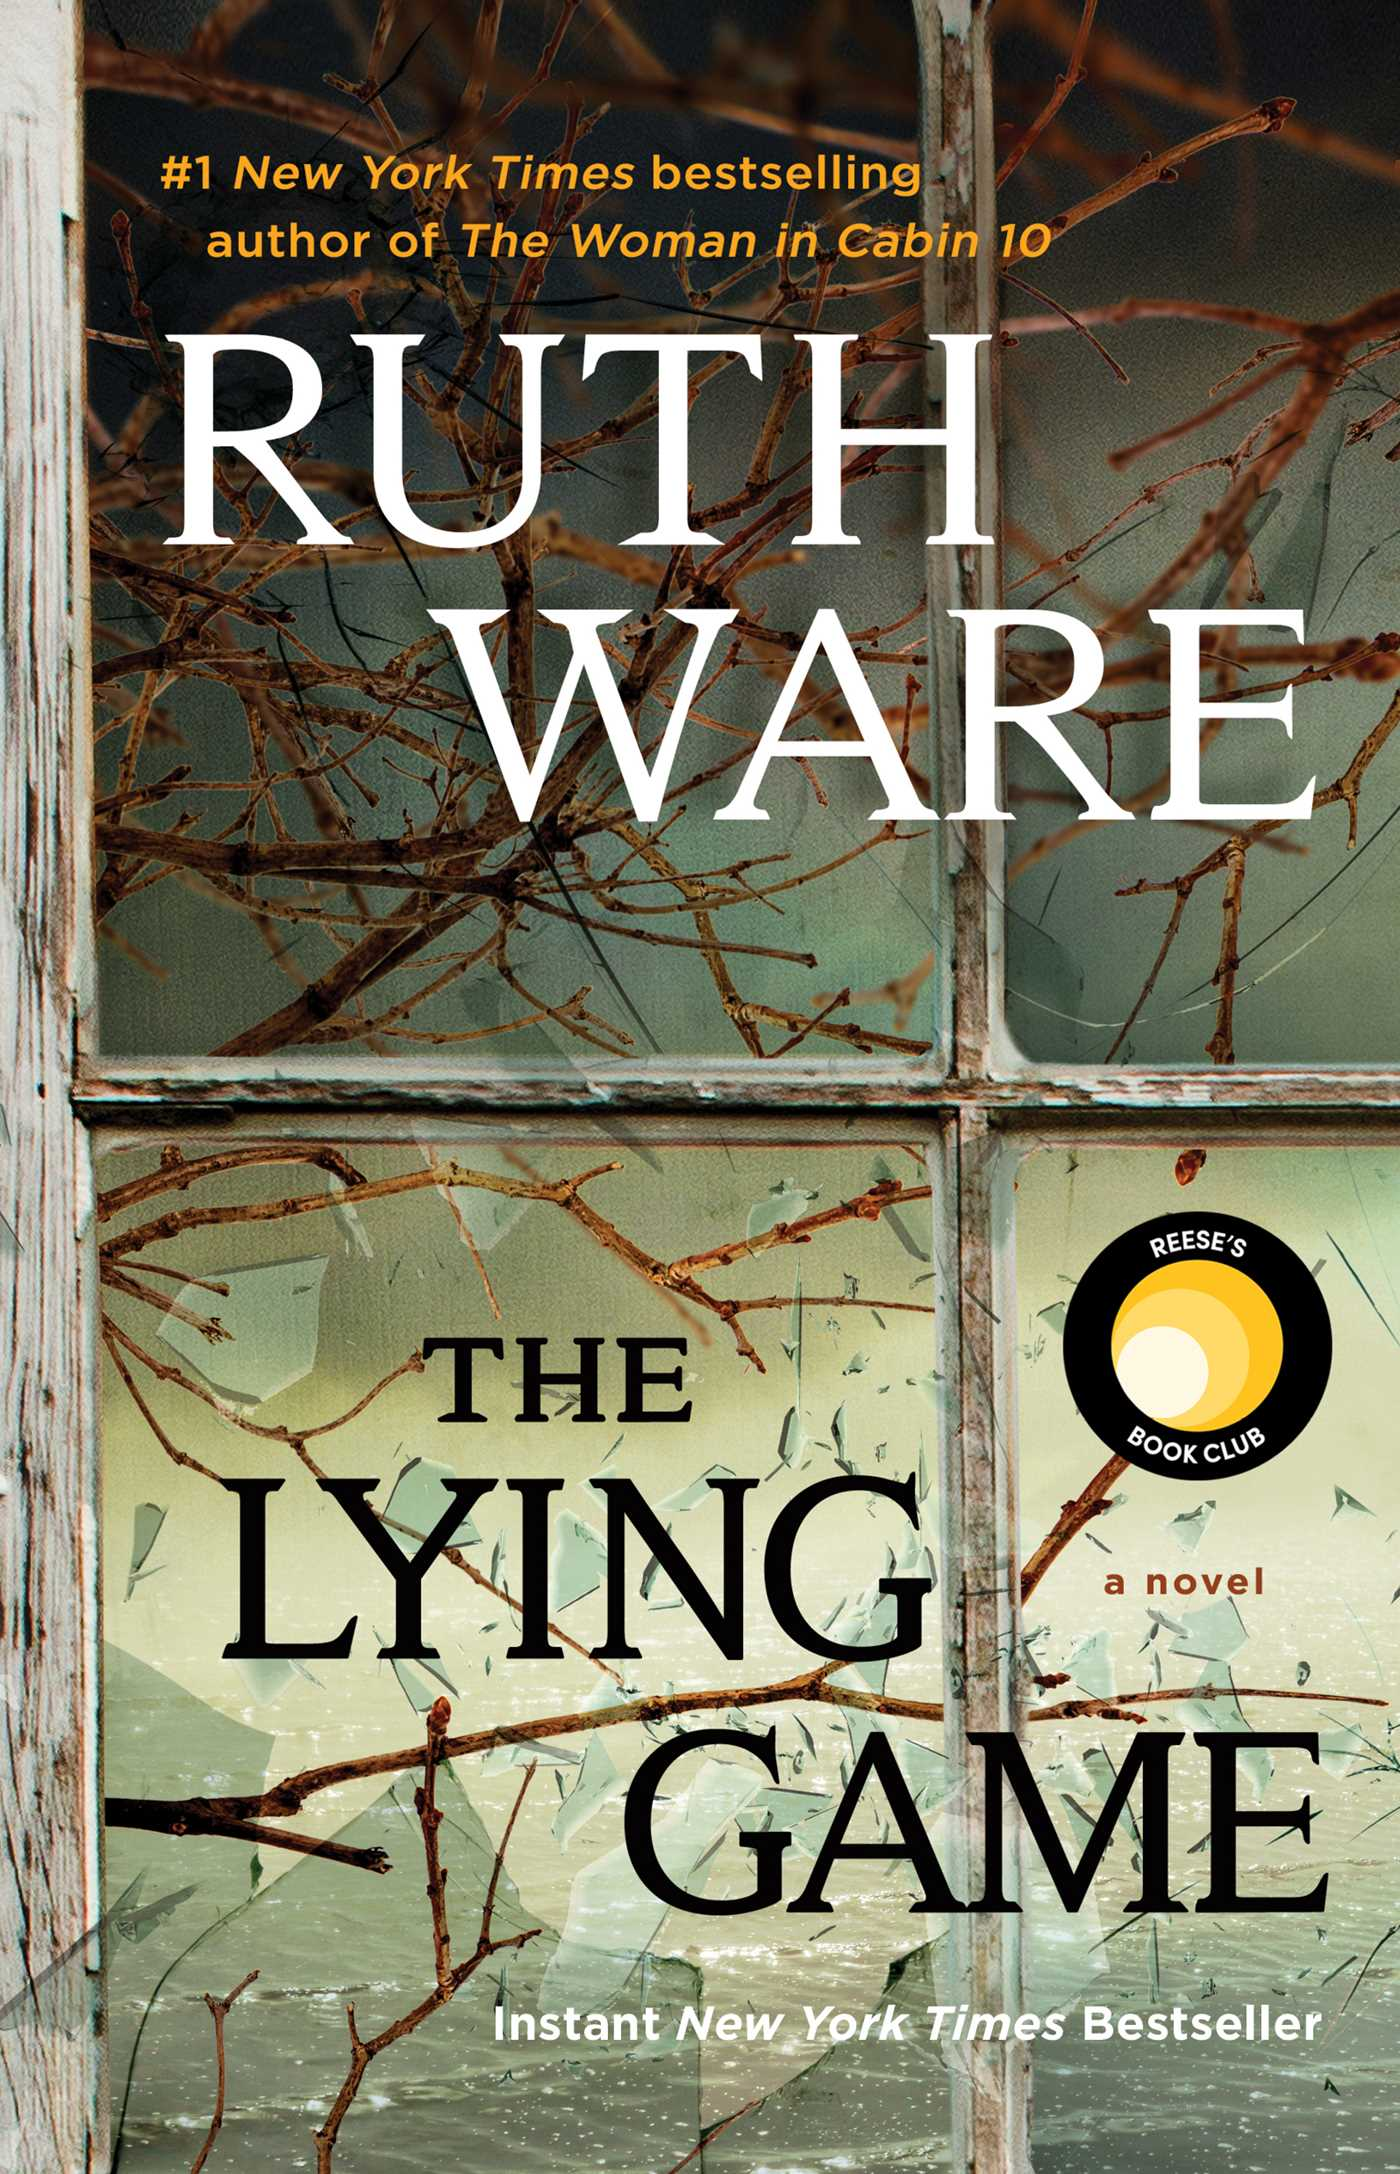 The cover of the book The Lying Game